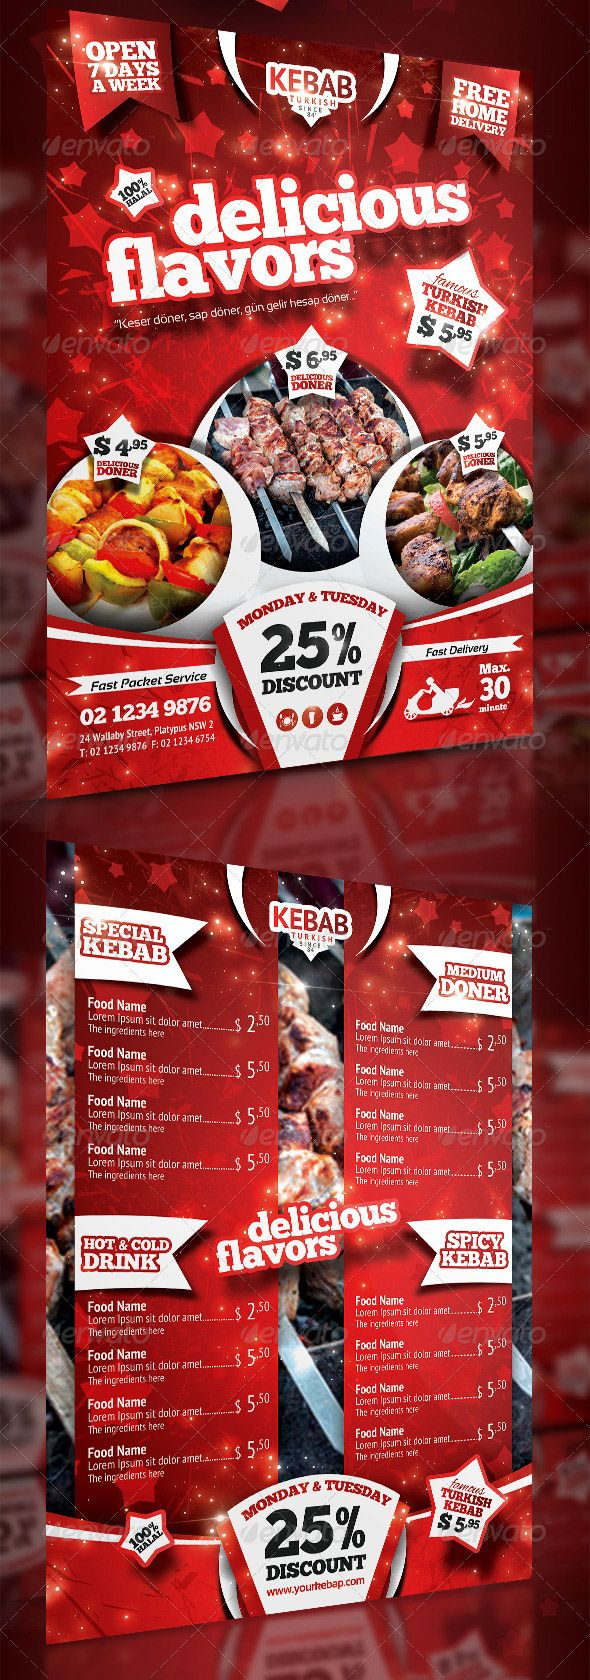 Kebab Menu Flyer - PSD Template